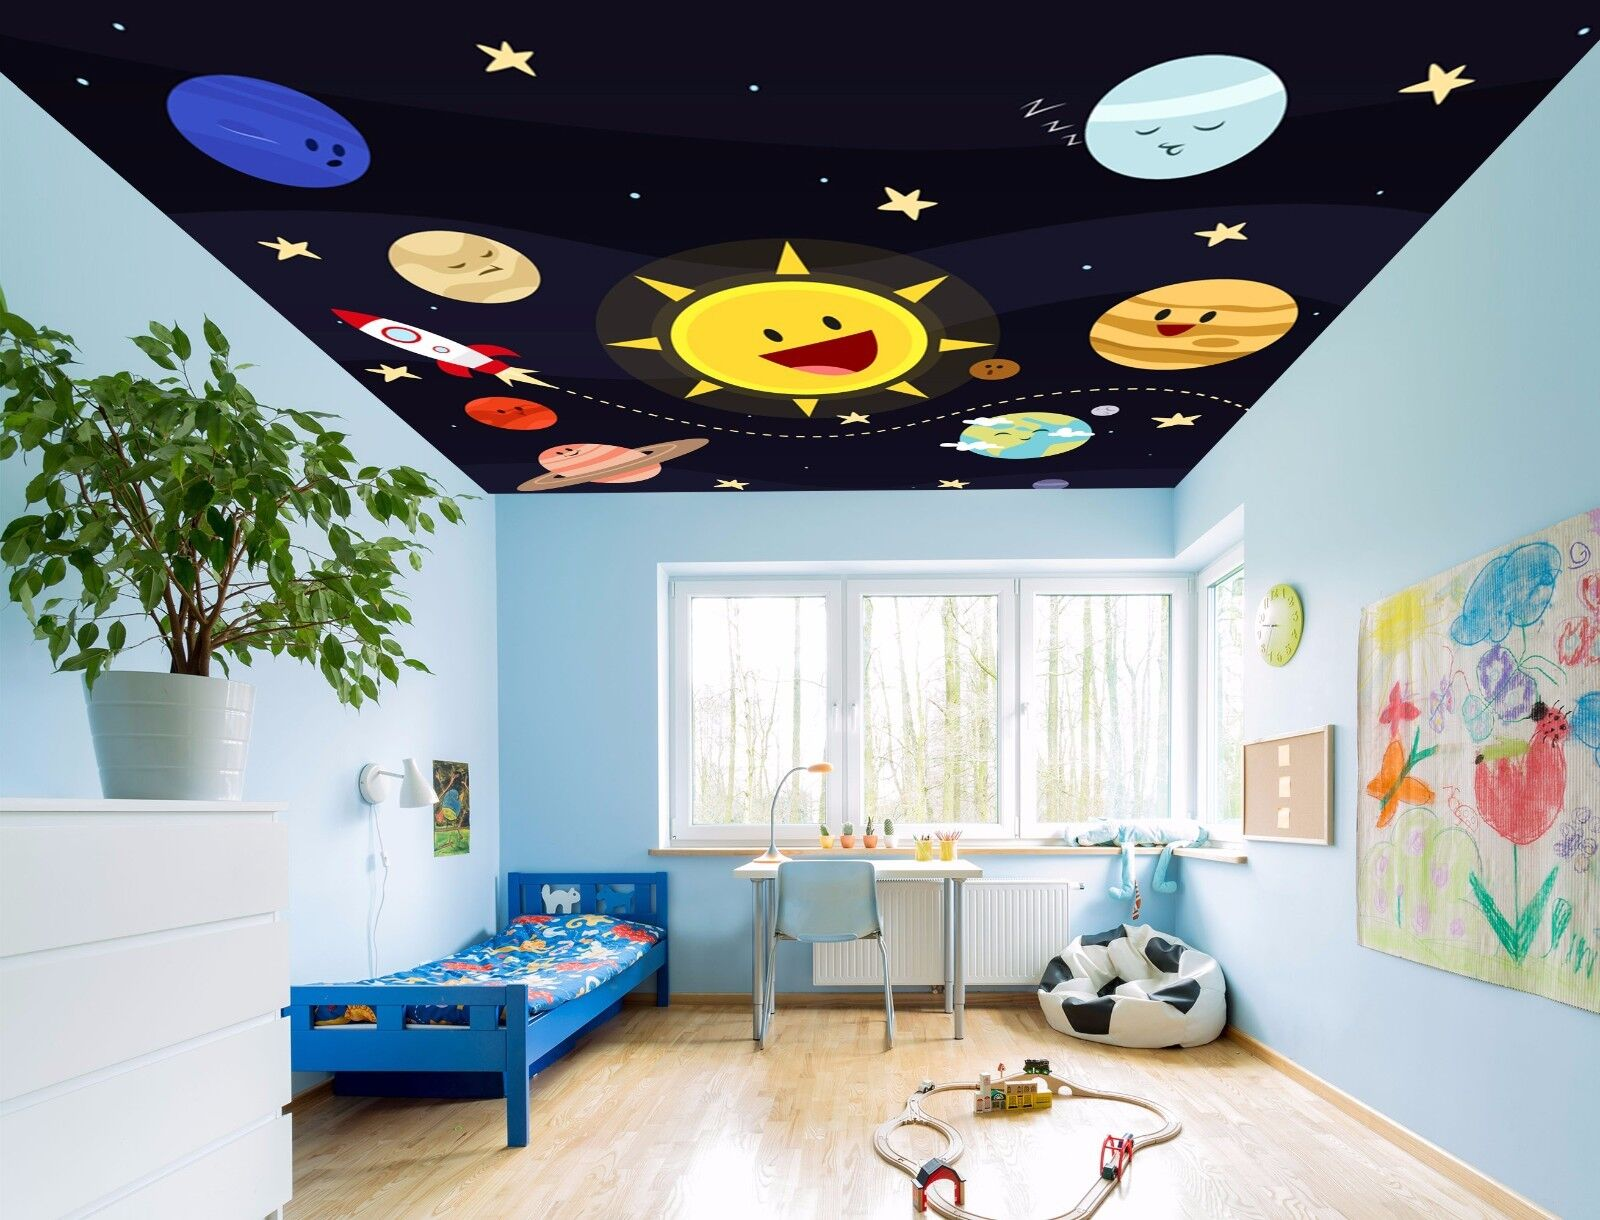 3D Cute Sun 754 Ceiling WallPaper Murals Wall Print Decal Deco AJ WALLPAPER GB